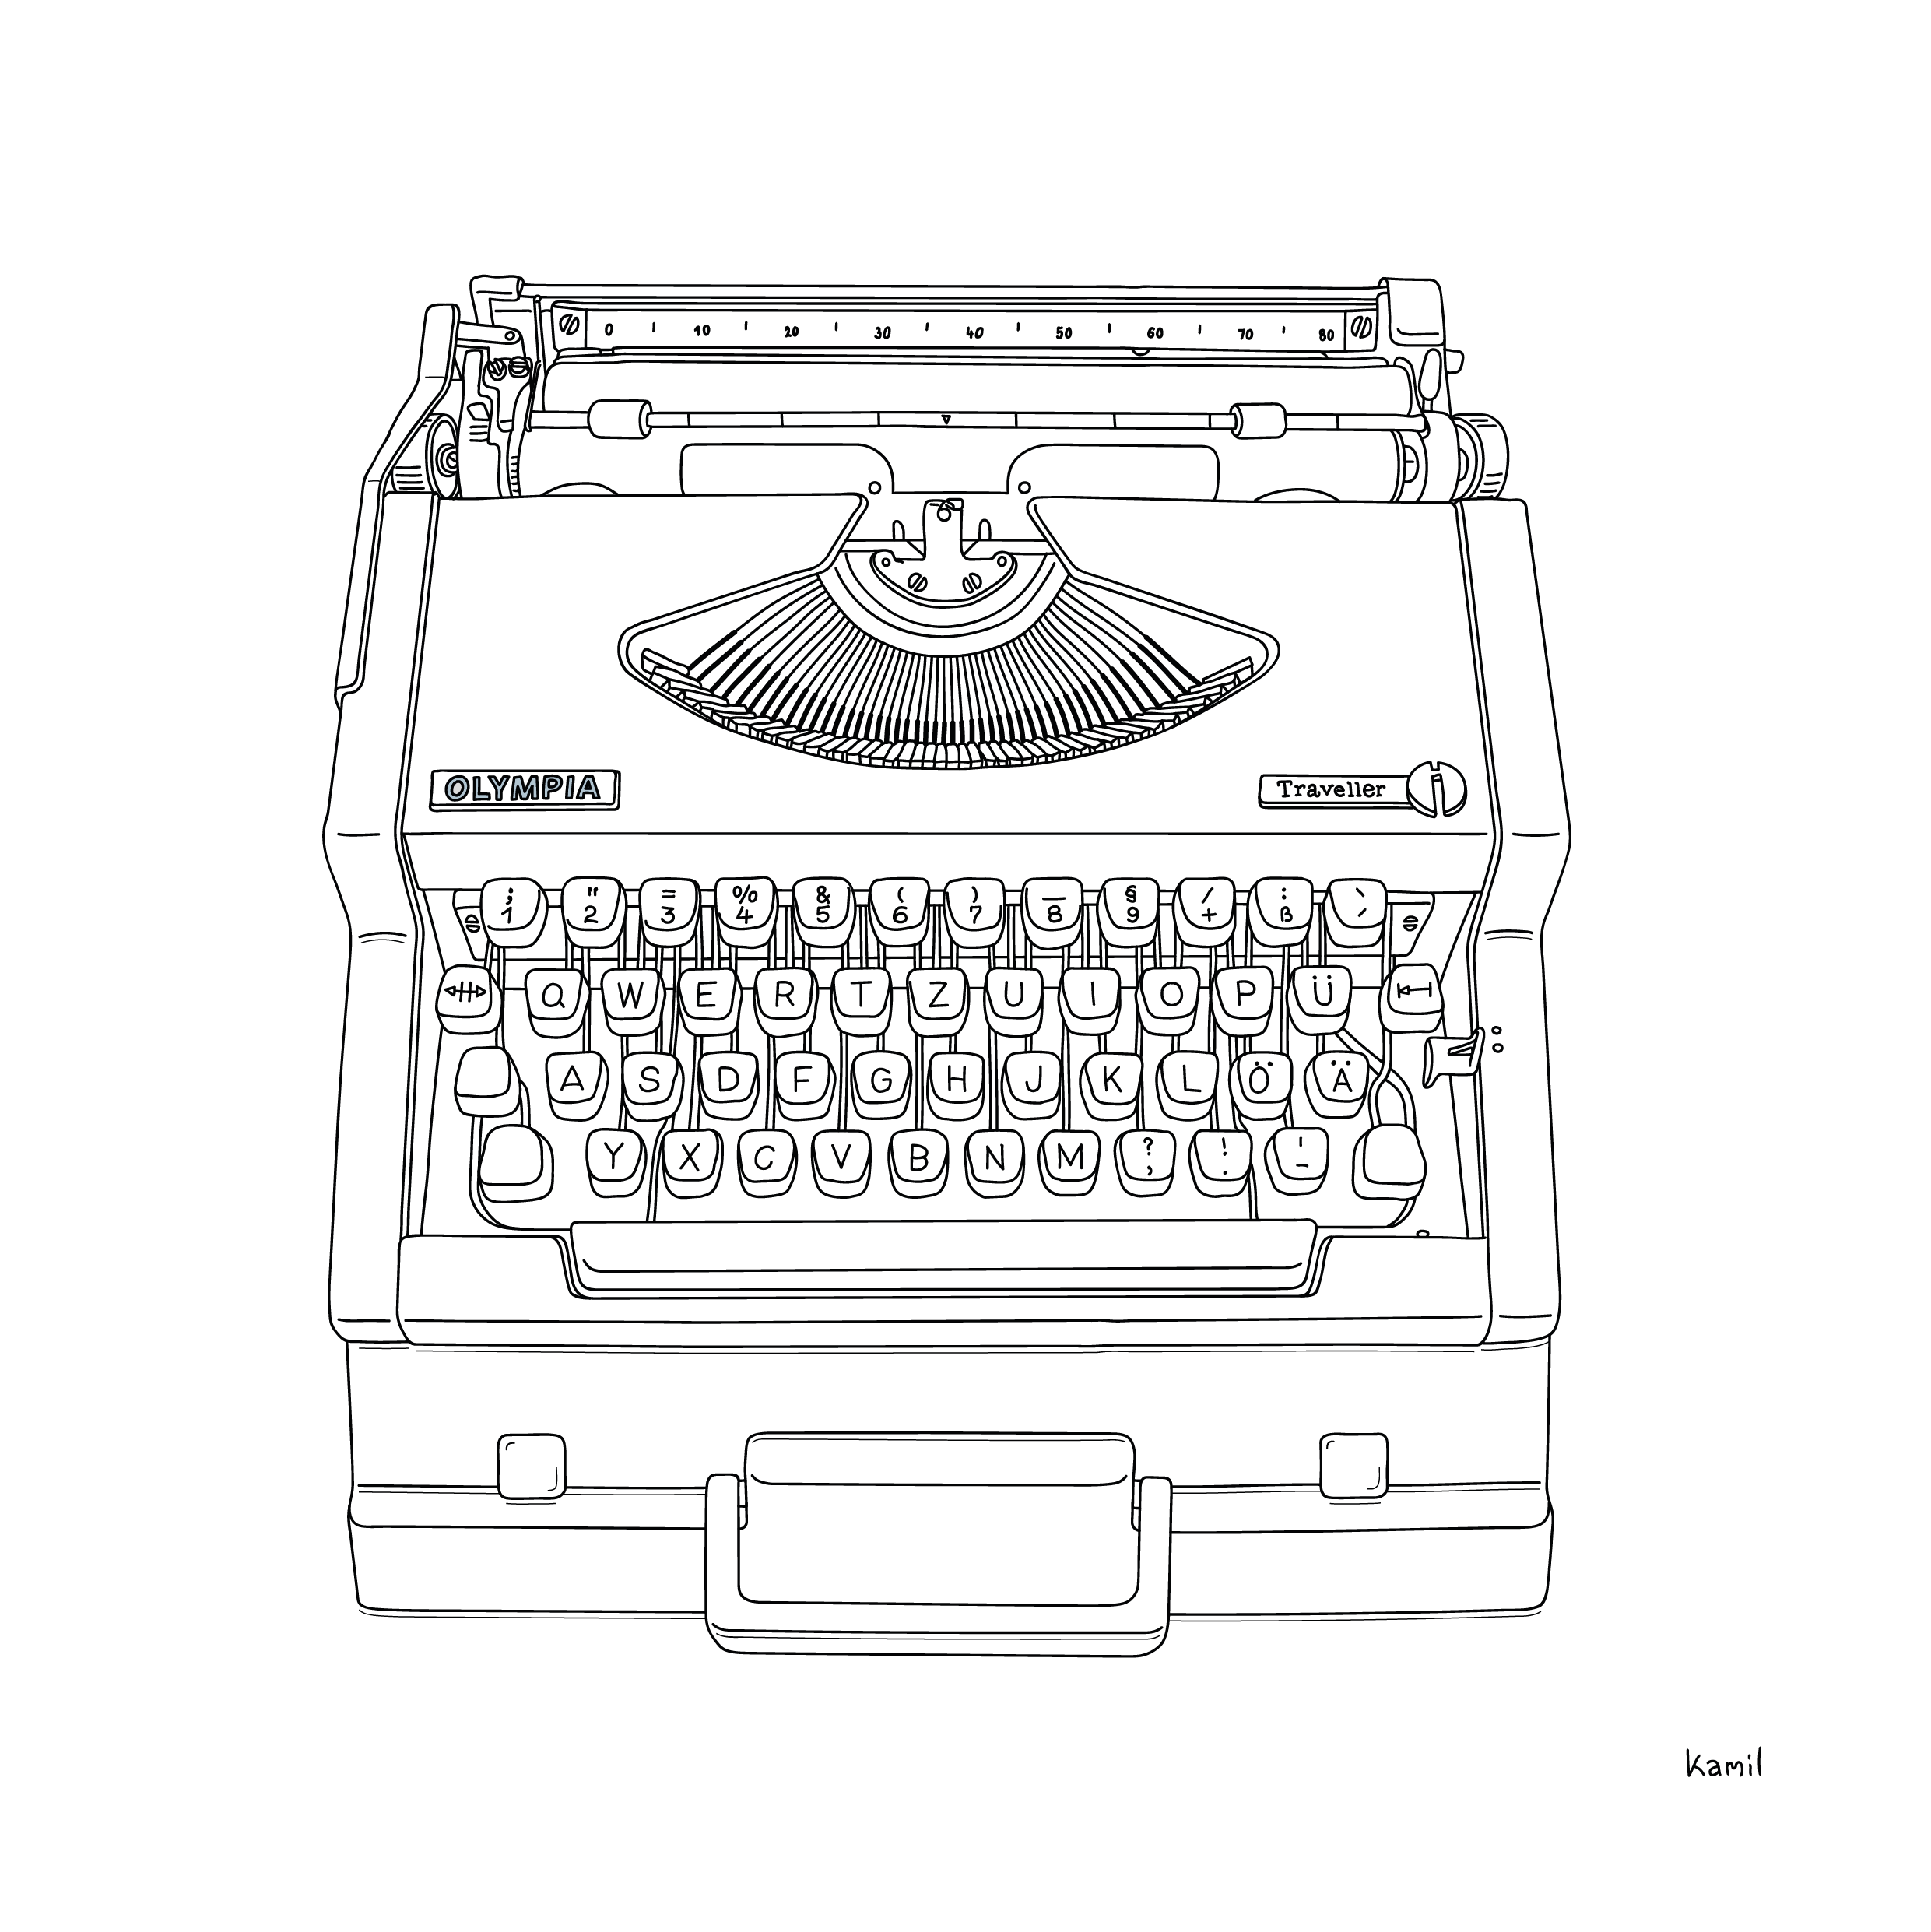 typewriter illustration in black outlines with case